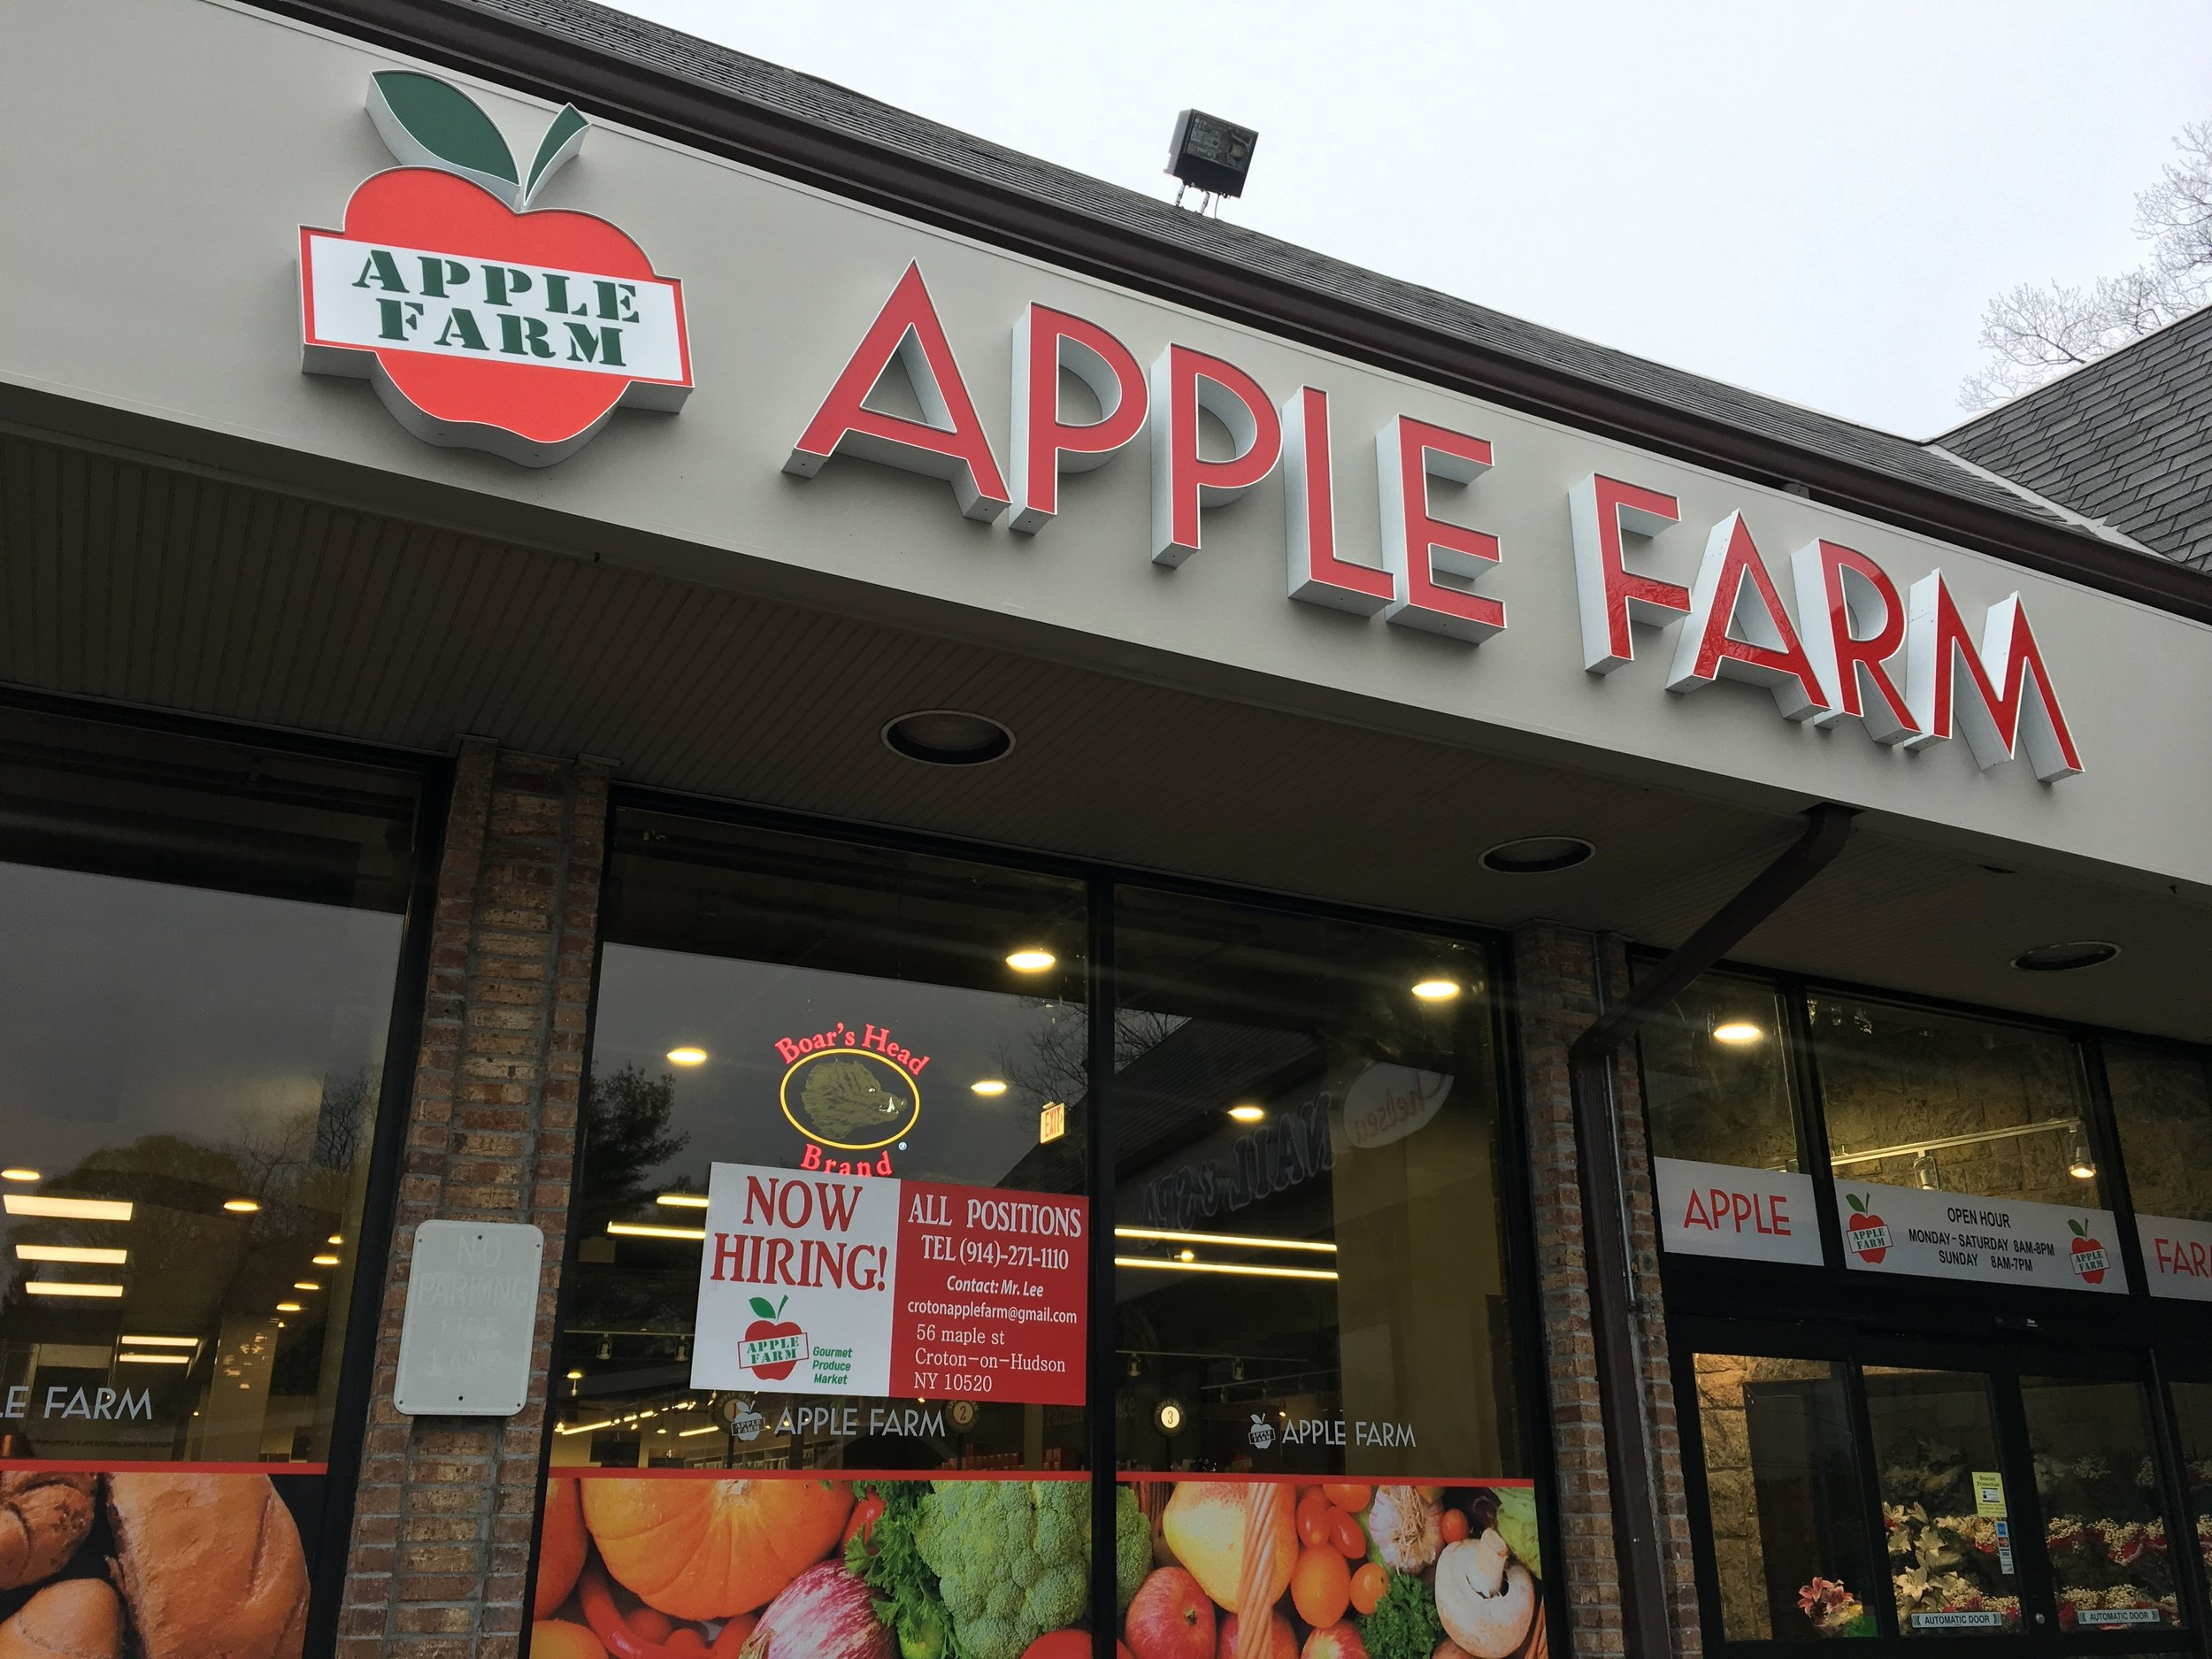 Apple Farm IMG_3852.JPG